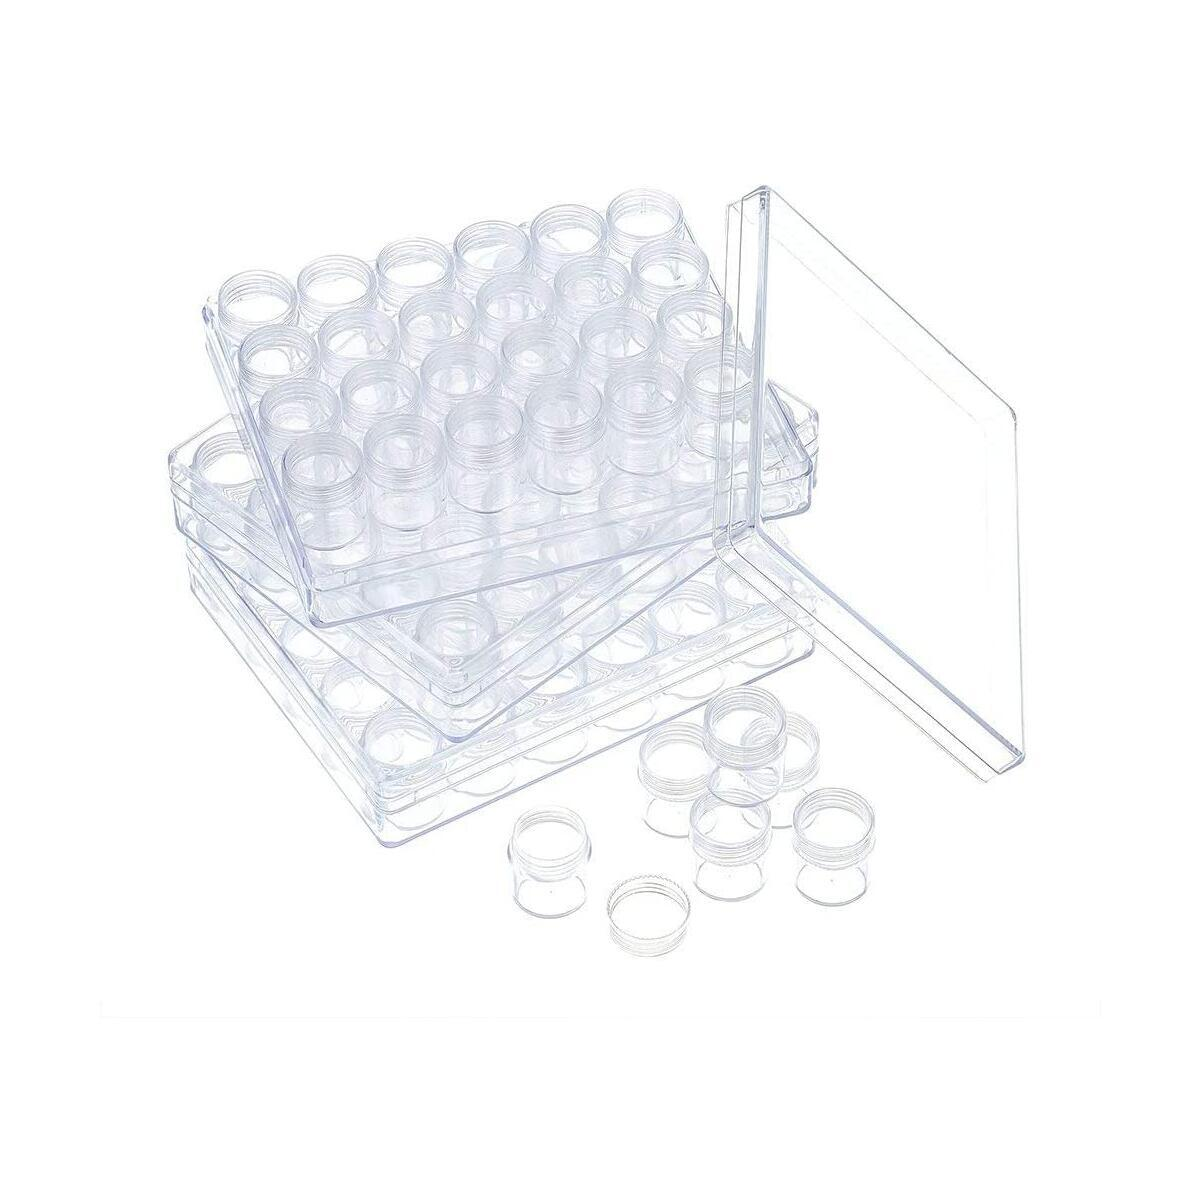 A&C Minimart Bead Storage Container System: Includes Screw-Top Canisters – for Diamond, Nail Art Supplies, Rhinestones, Jewelry & Other Small Items